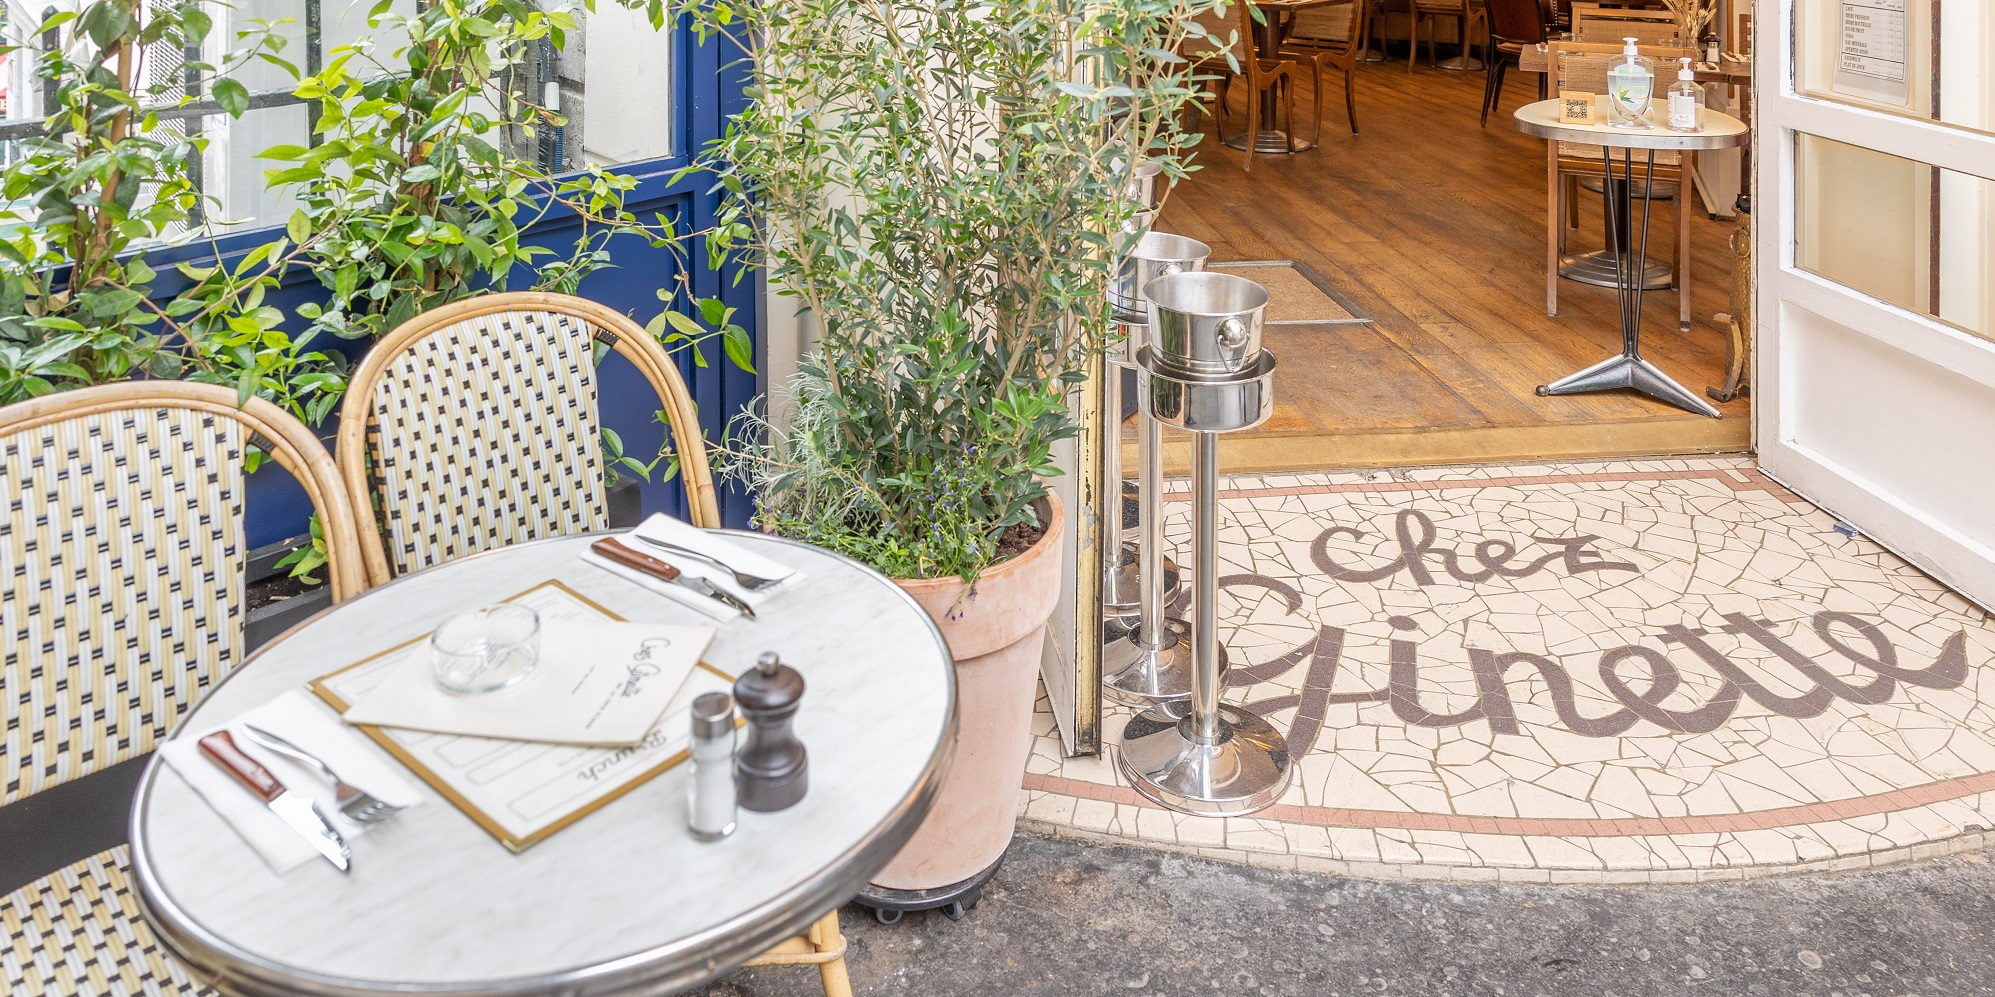 Brunch Chez Ginette (75018 Paris)